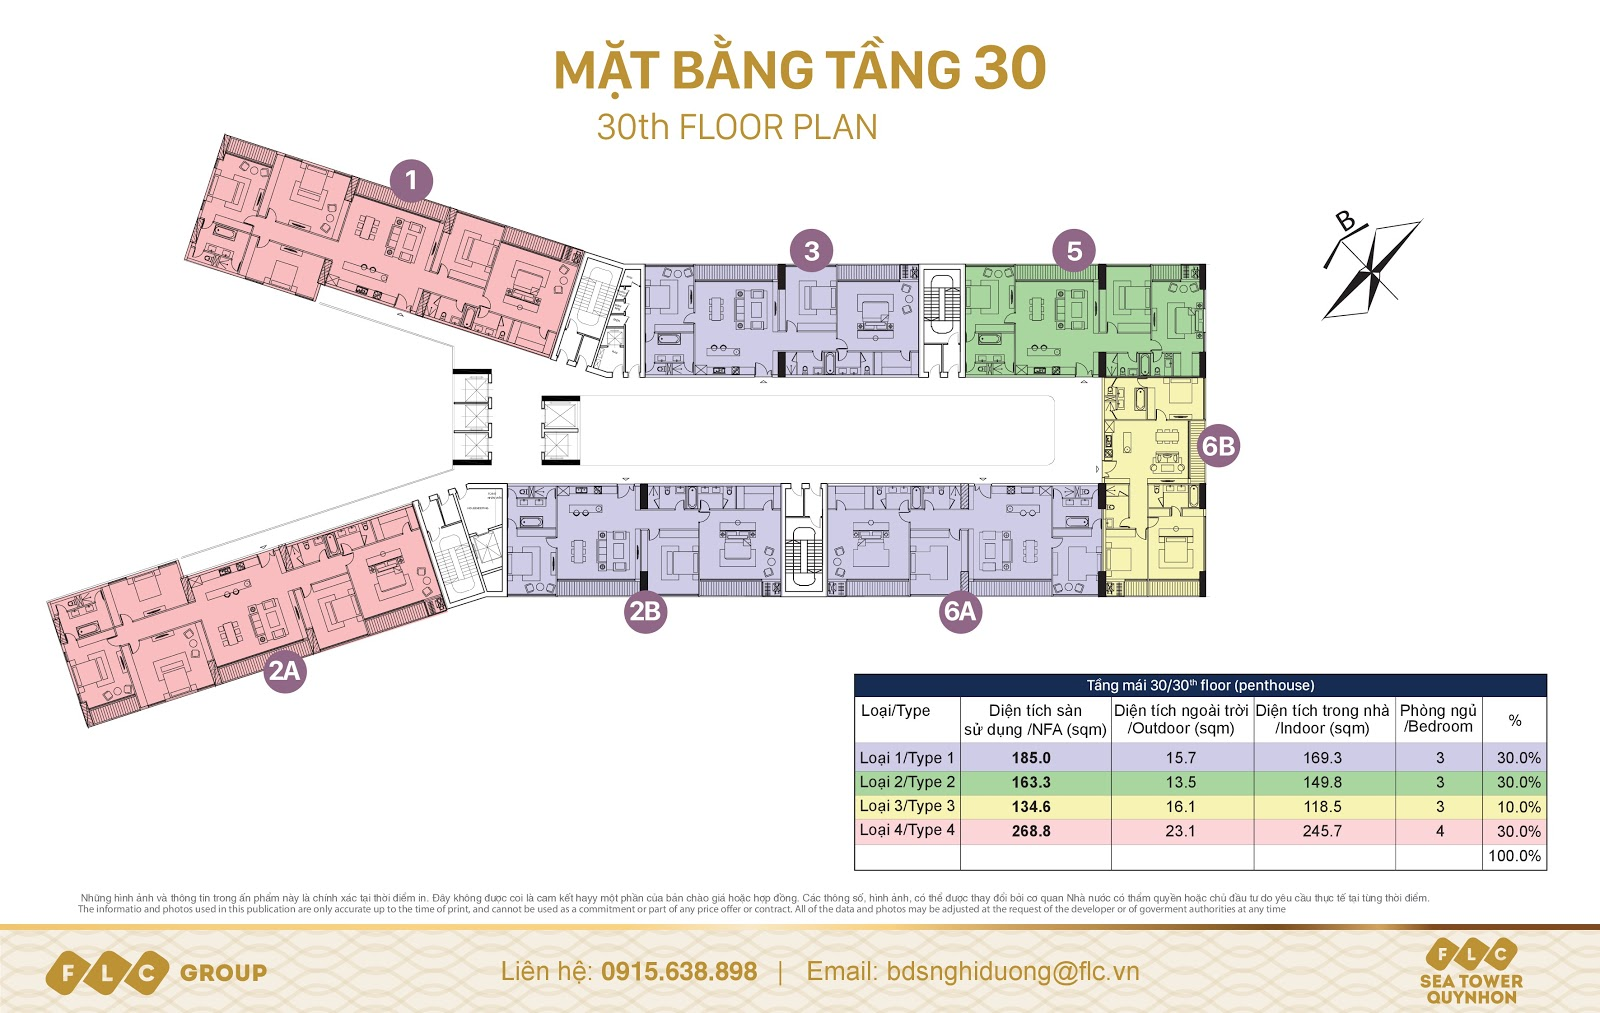 mat-bang-tang-penhouse-seaotwer1